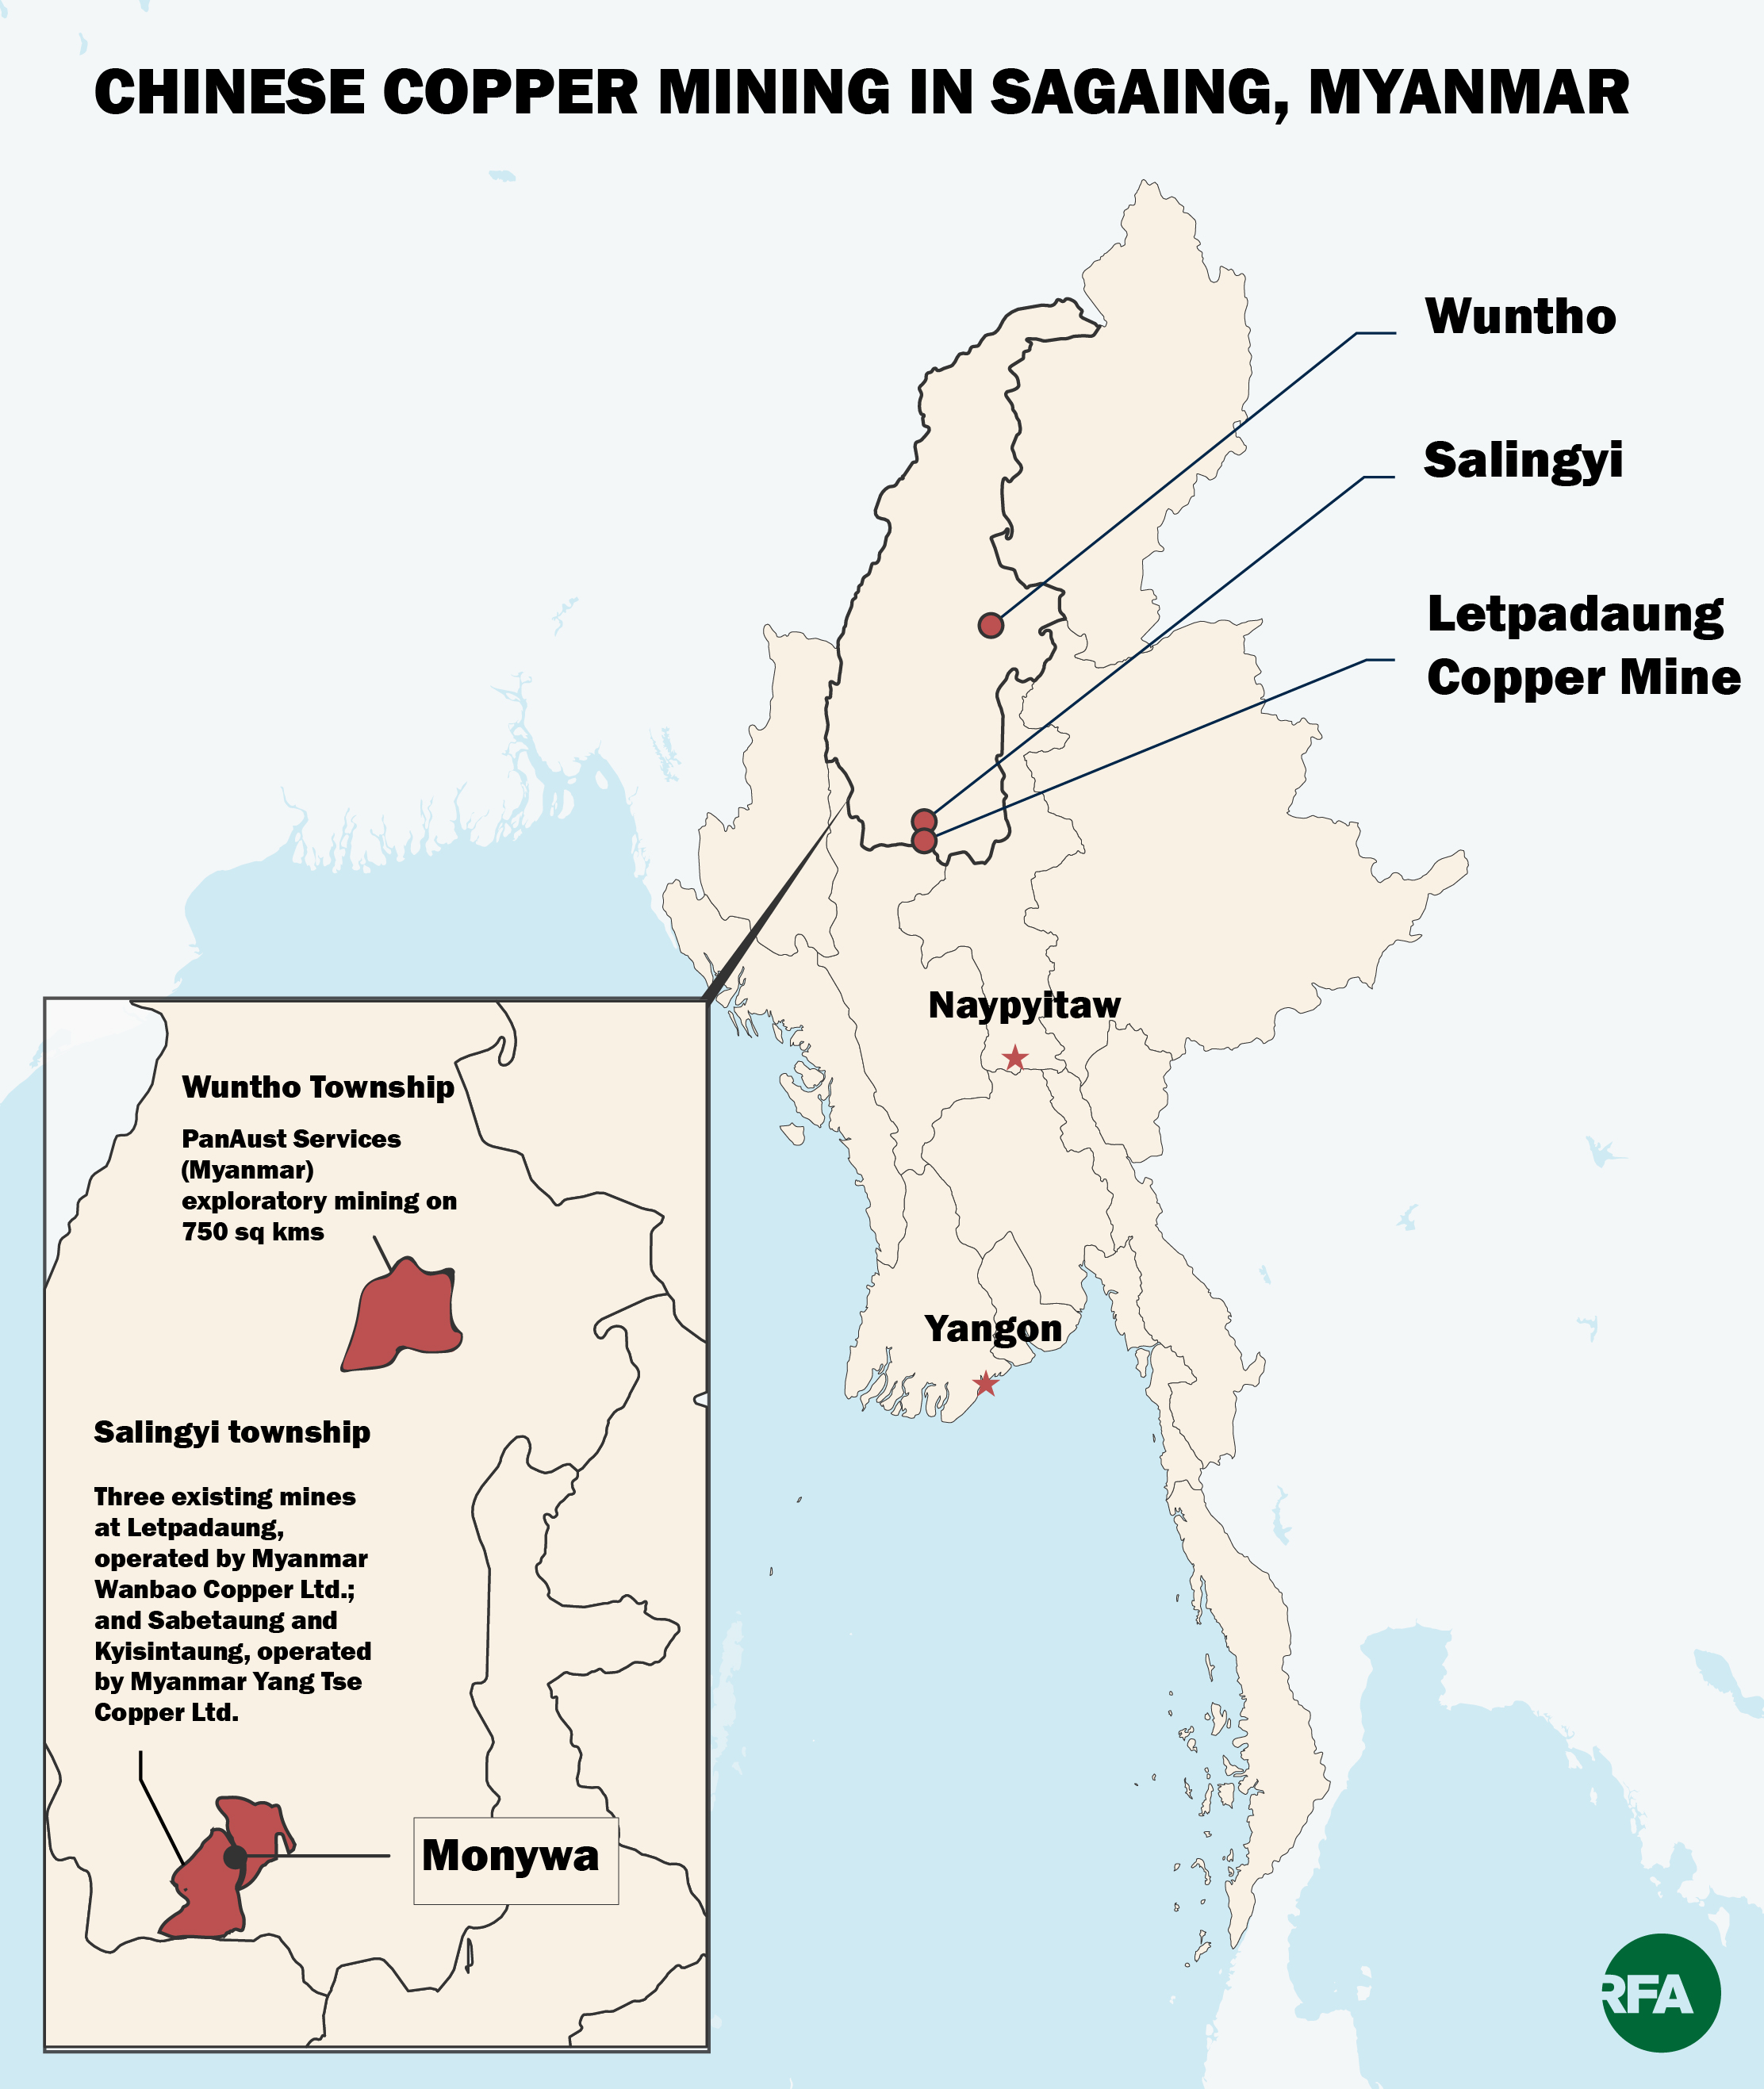 The map shows the locations of two Chinese-backed copper mining projects in Wuntho and Salingyi townships in northwestern Myanmar's Sagaing region.